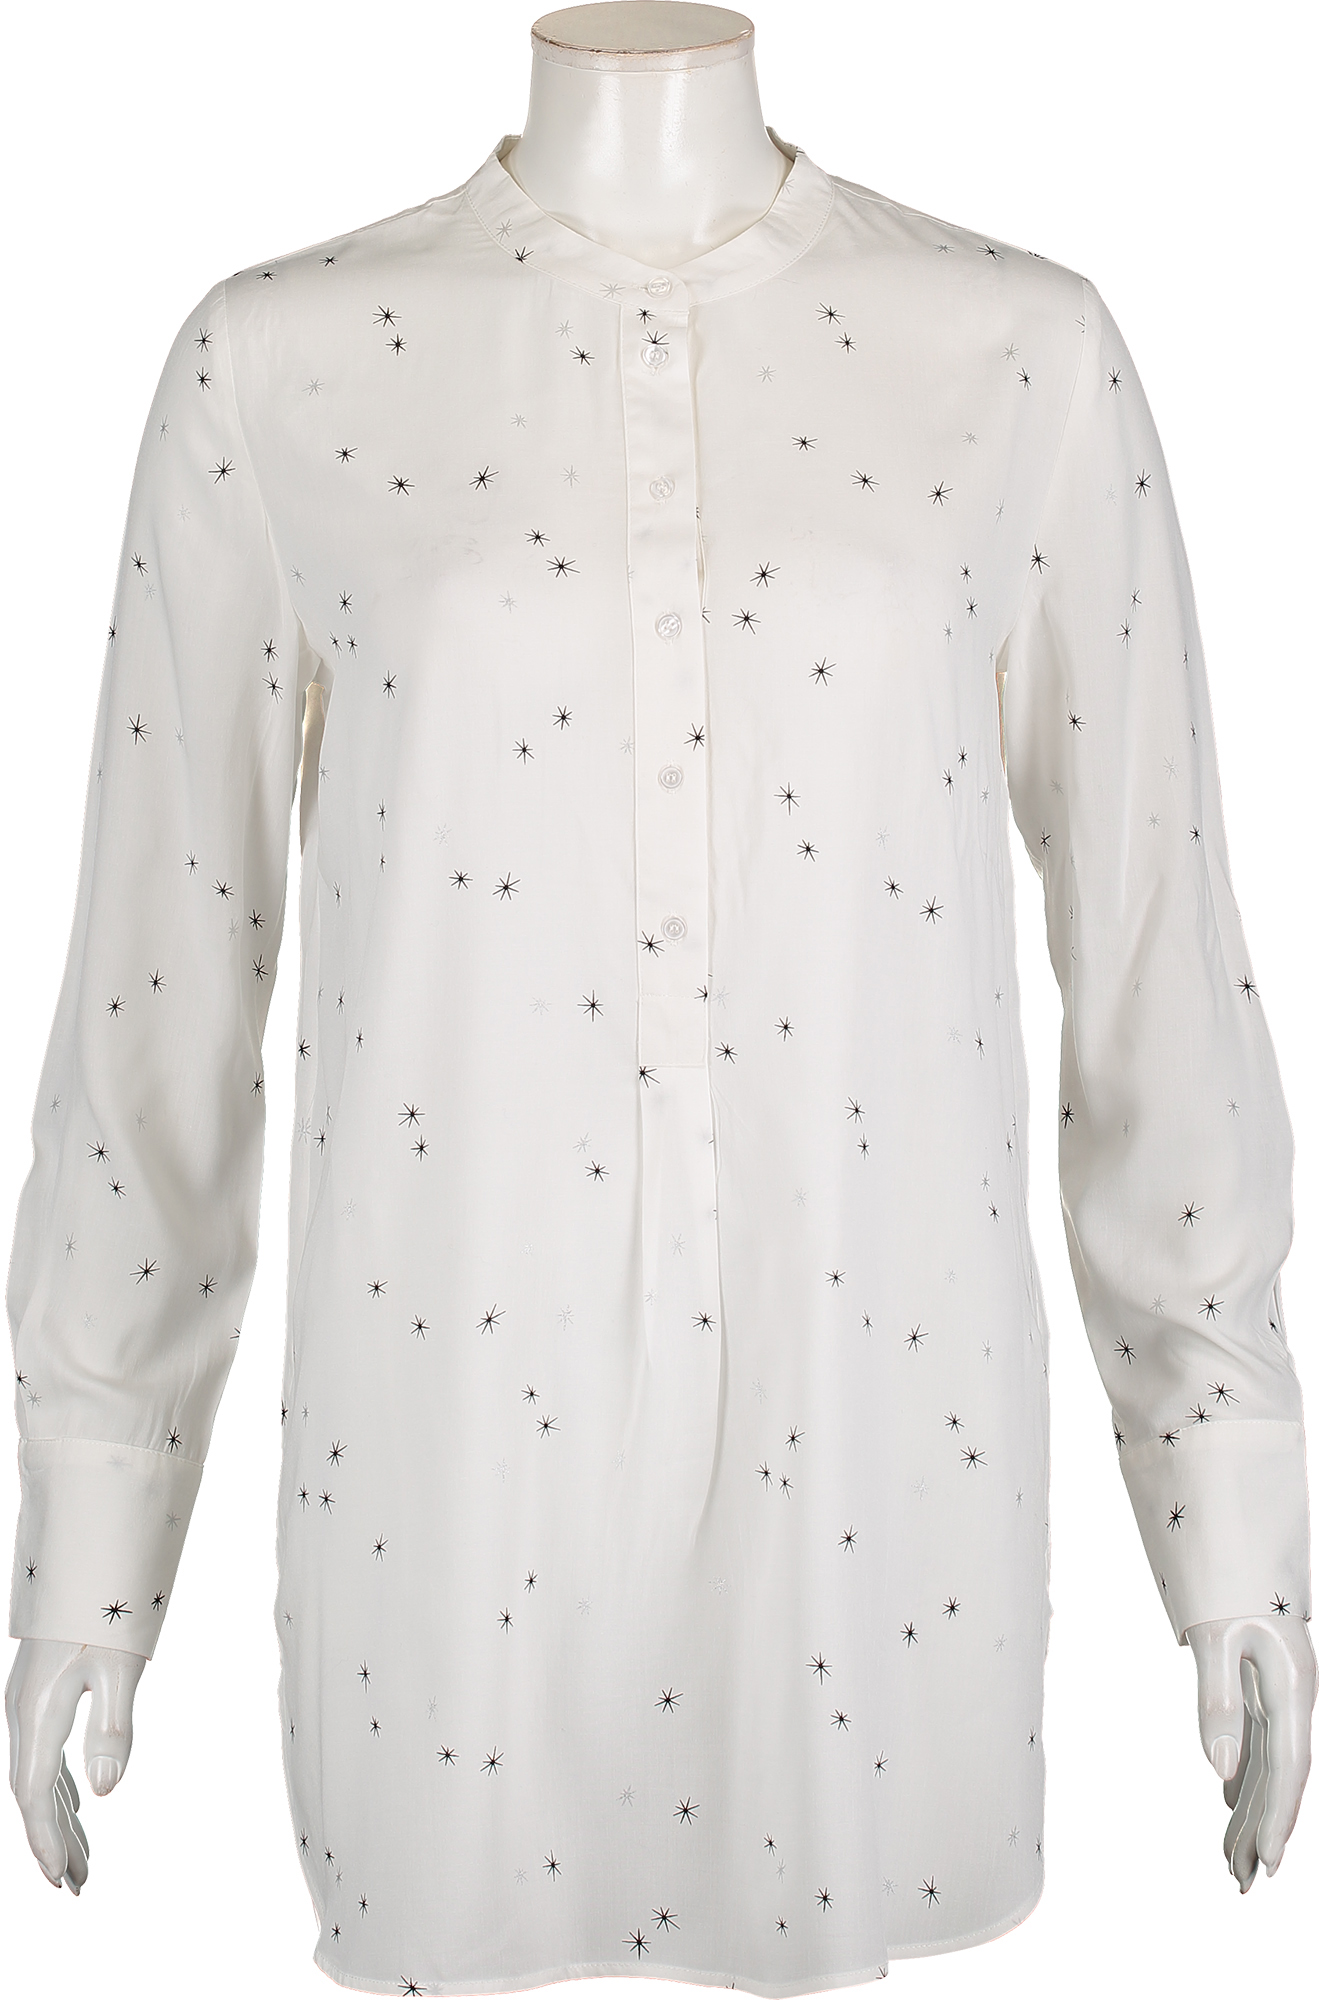 Piet Zoomers, Opus dames blouse